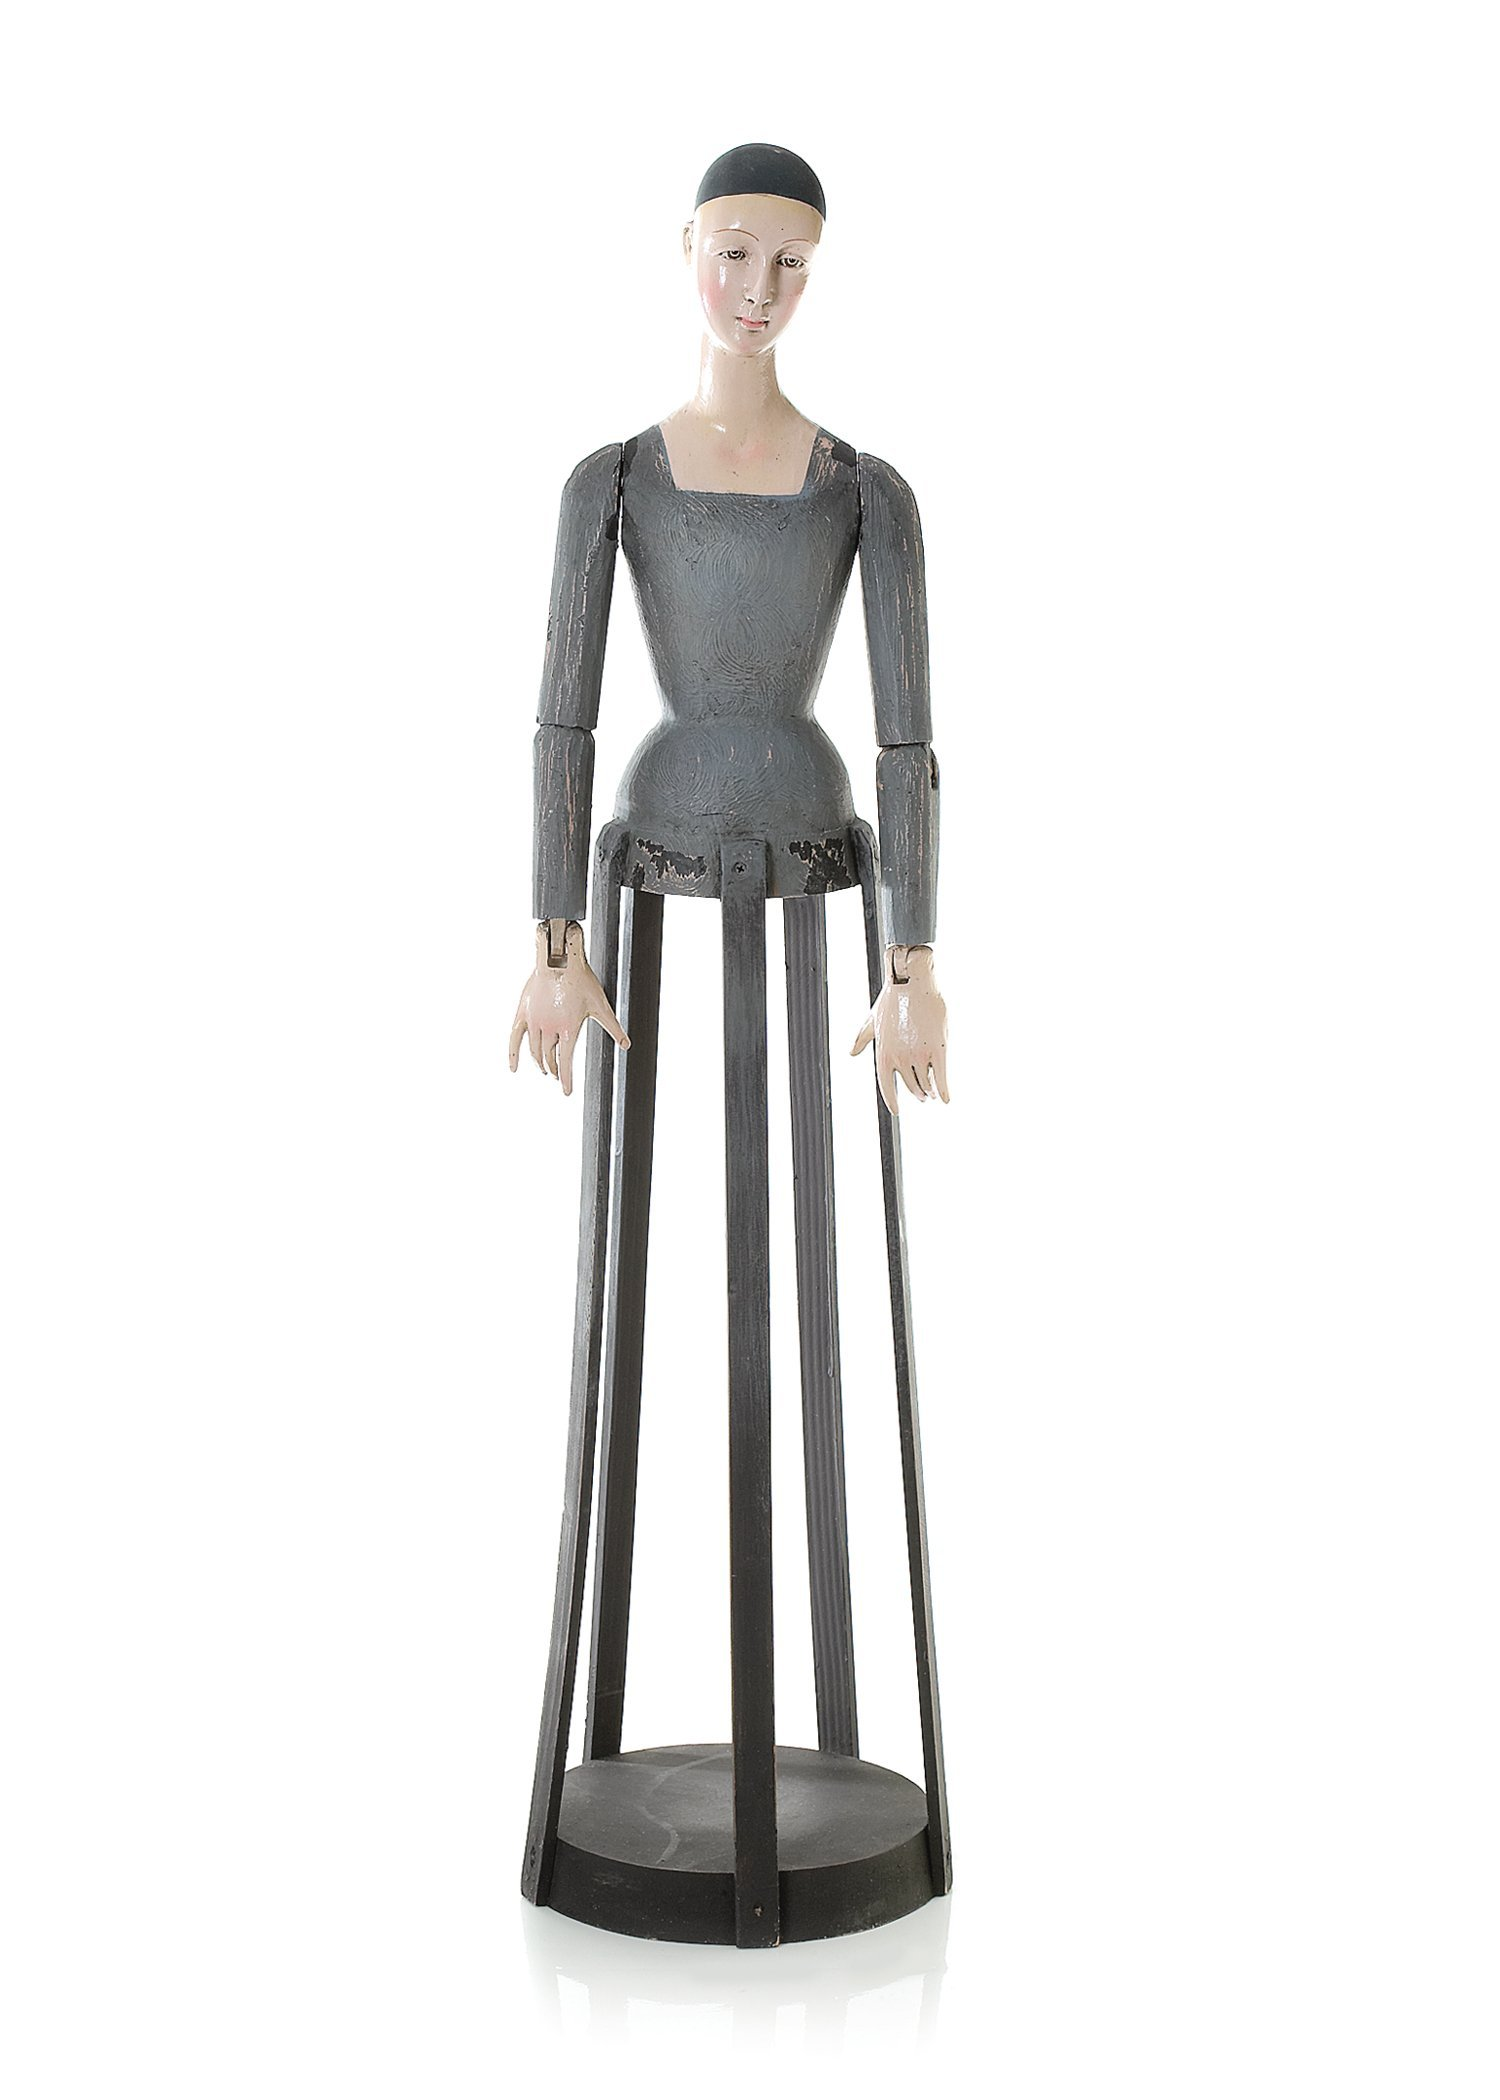 Gray Manikin by Halt Decor